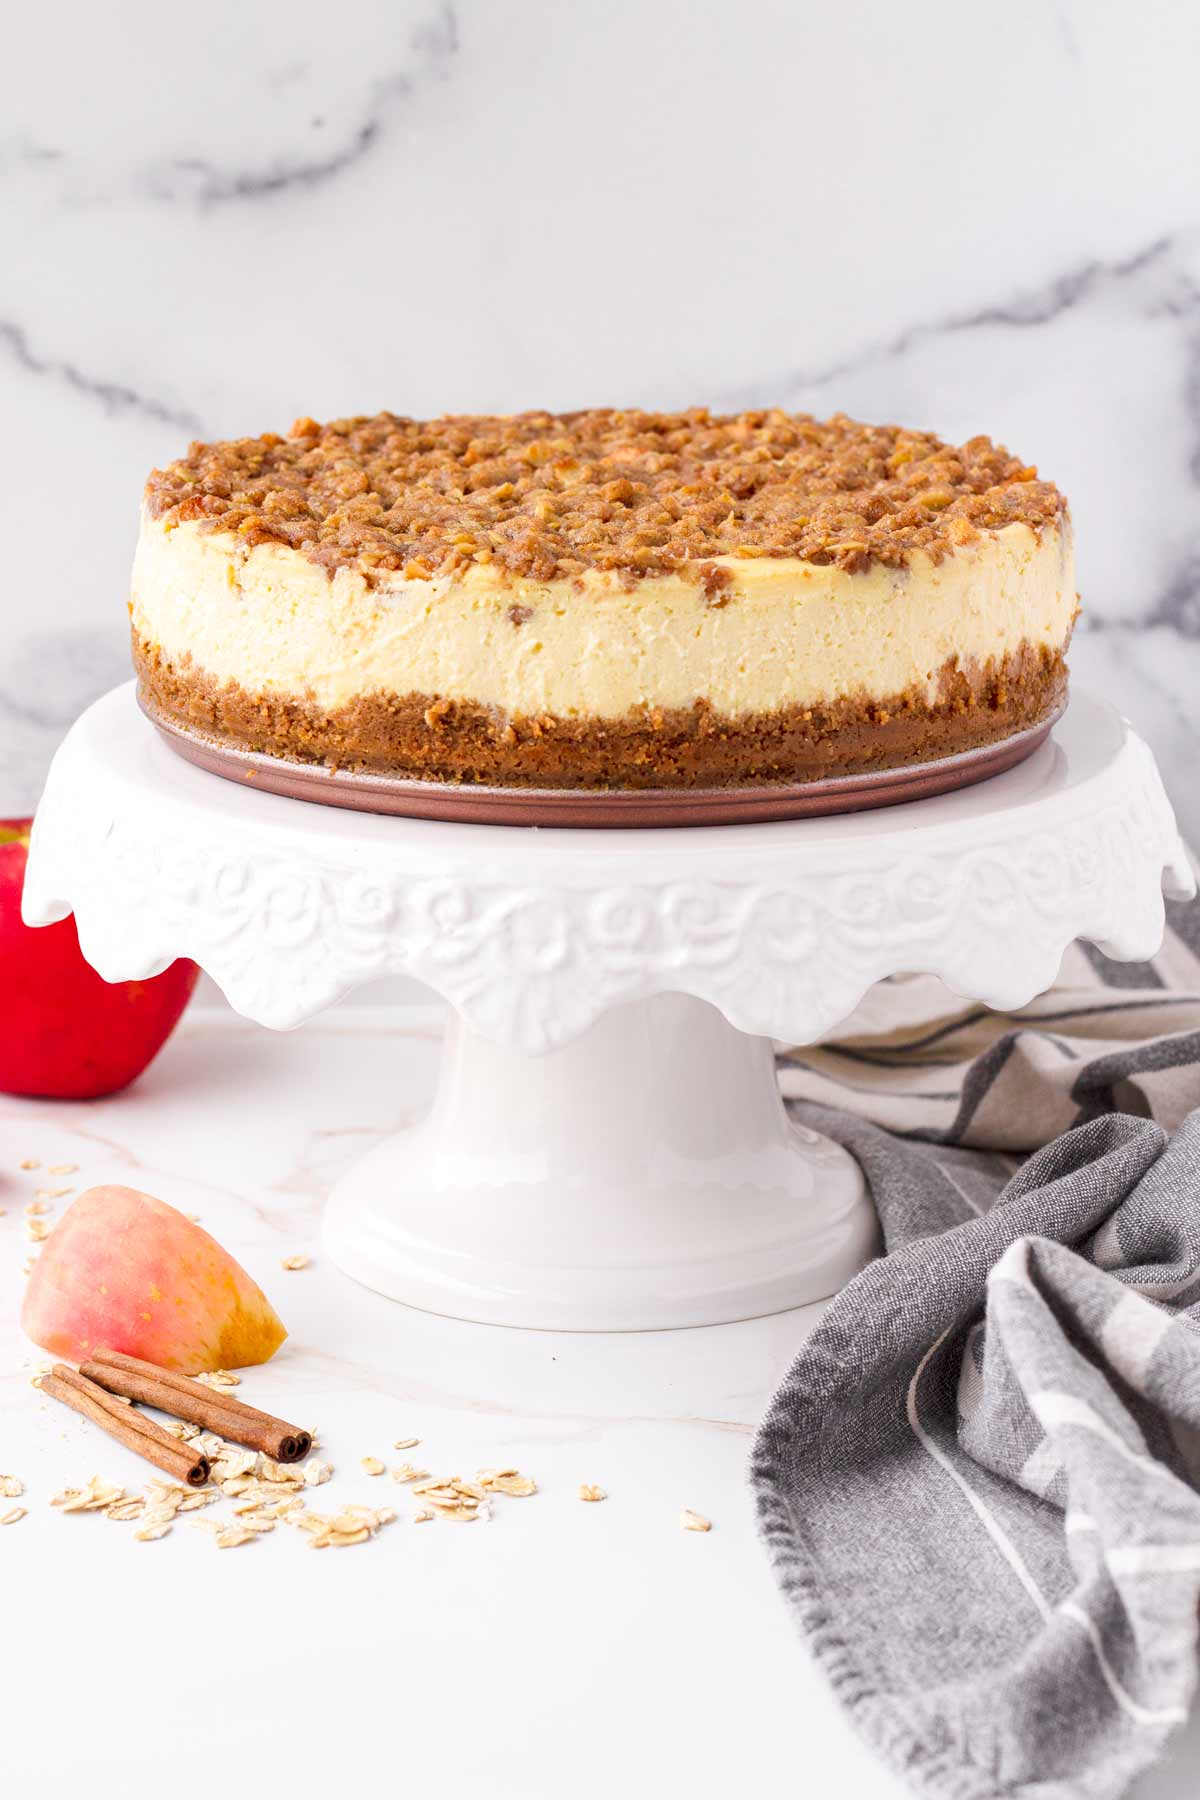 a 9 inch cheesecake topped with apples and oat crumble in a cake stand